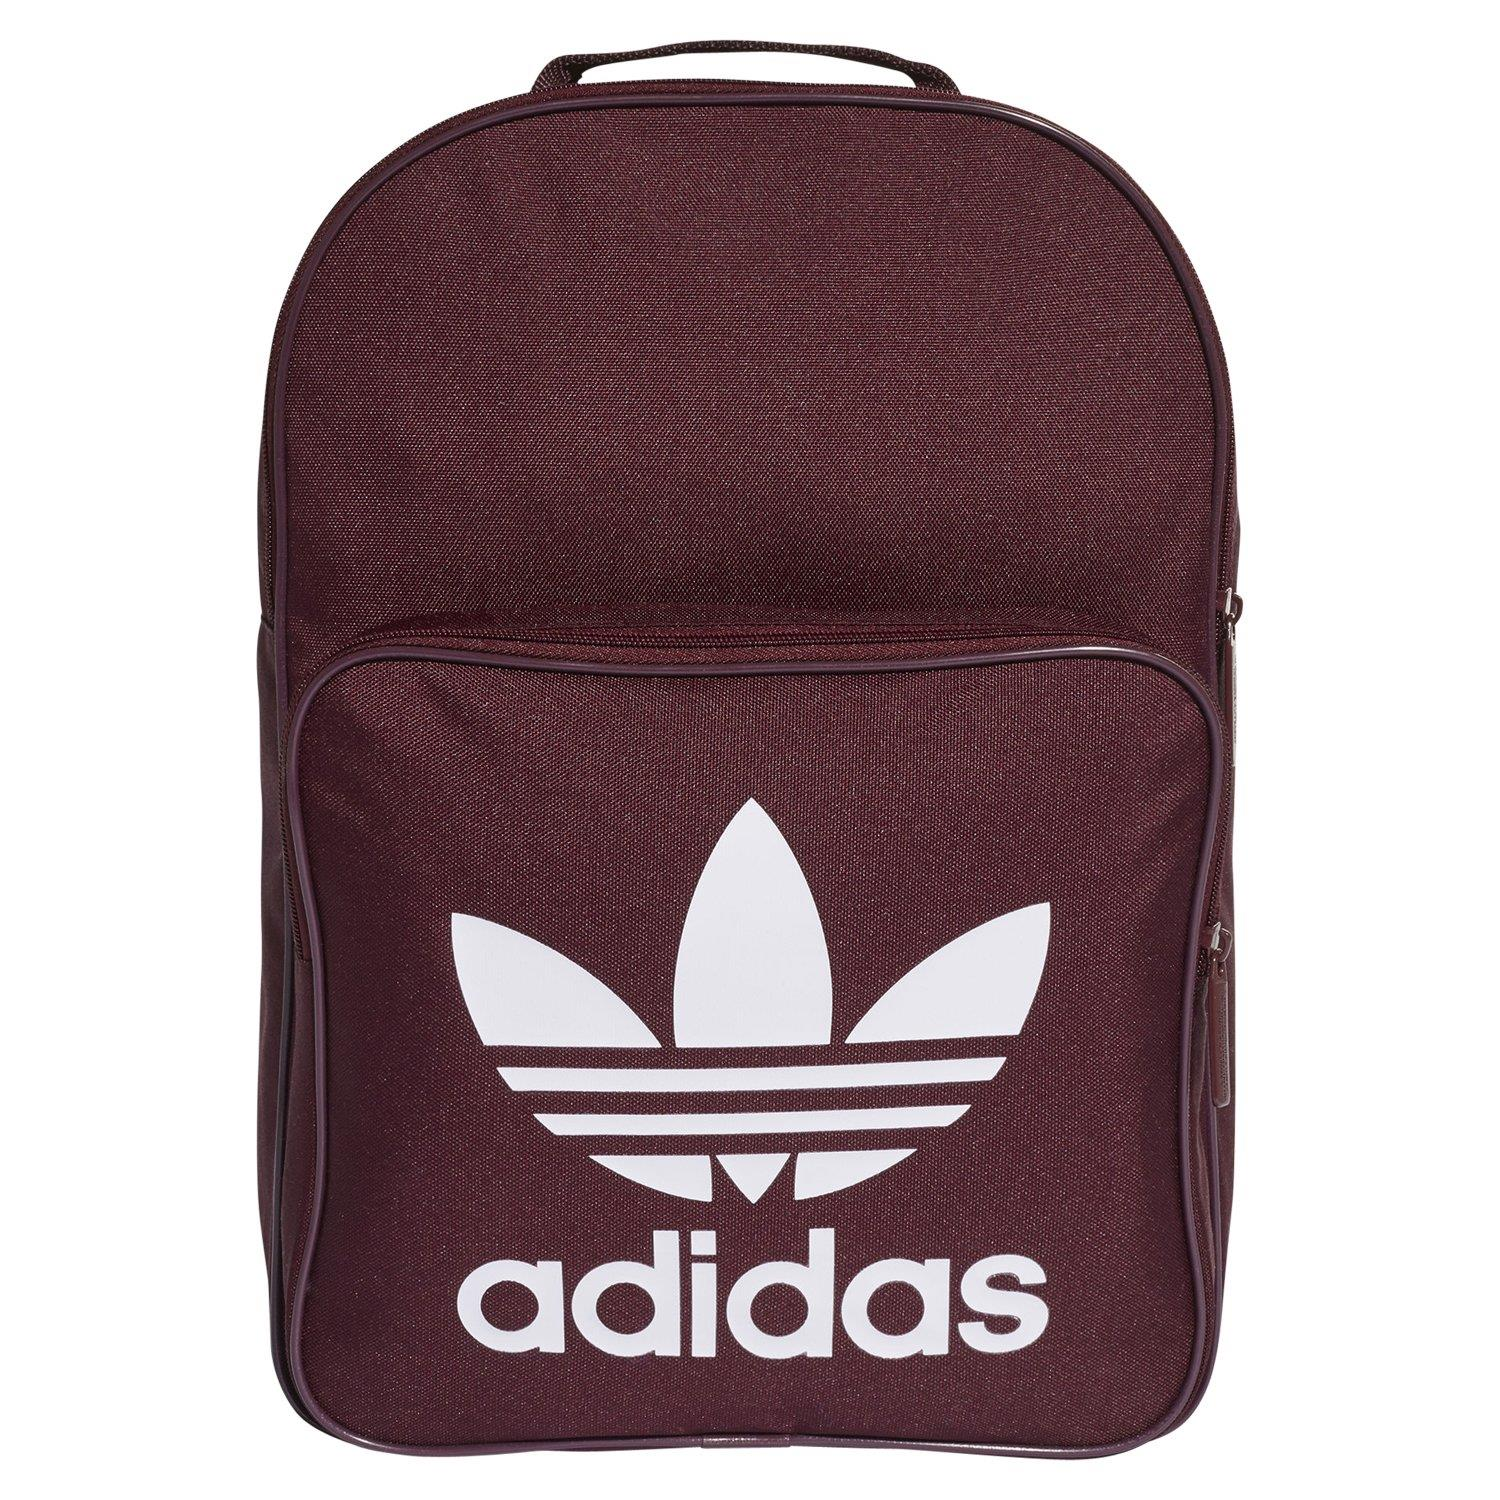 Details about adidas ORIGINALS BACK TO SCHOOL CLASSIC TREFOIL BACKPACK BAG GYM WORK COLLEGE